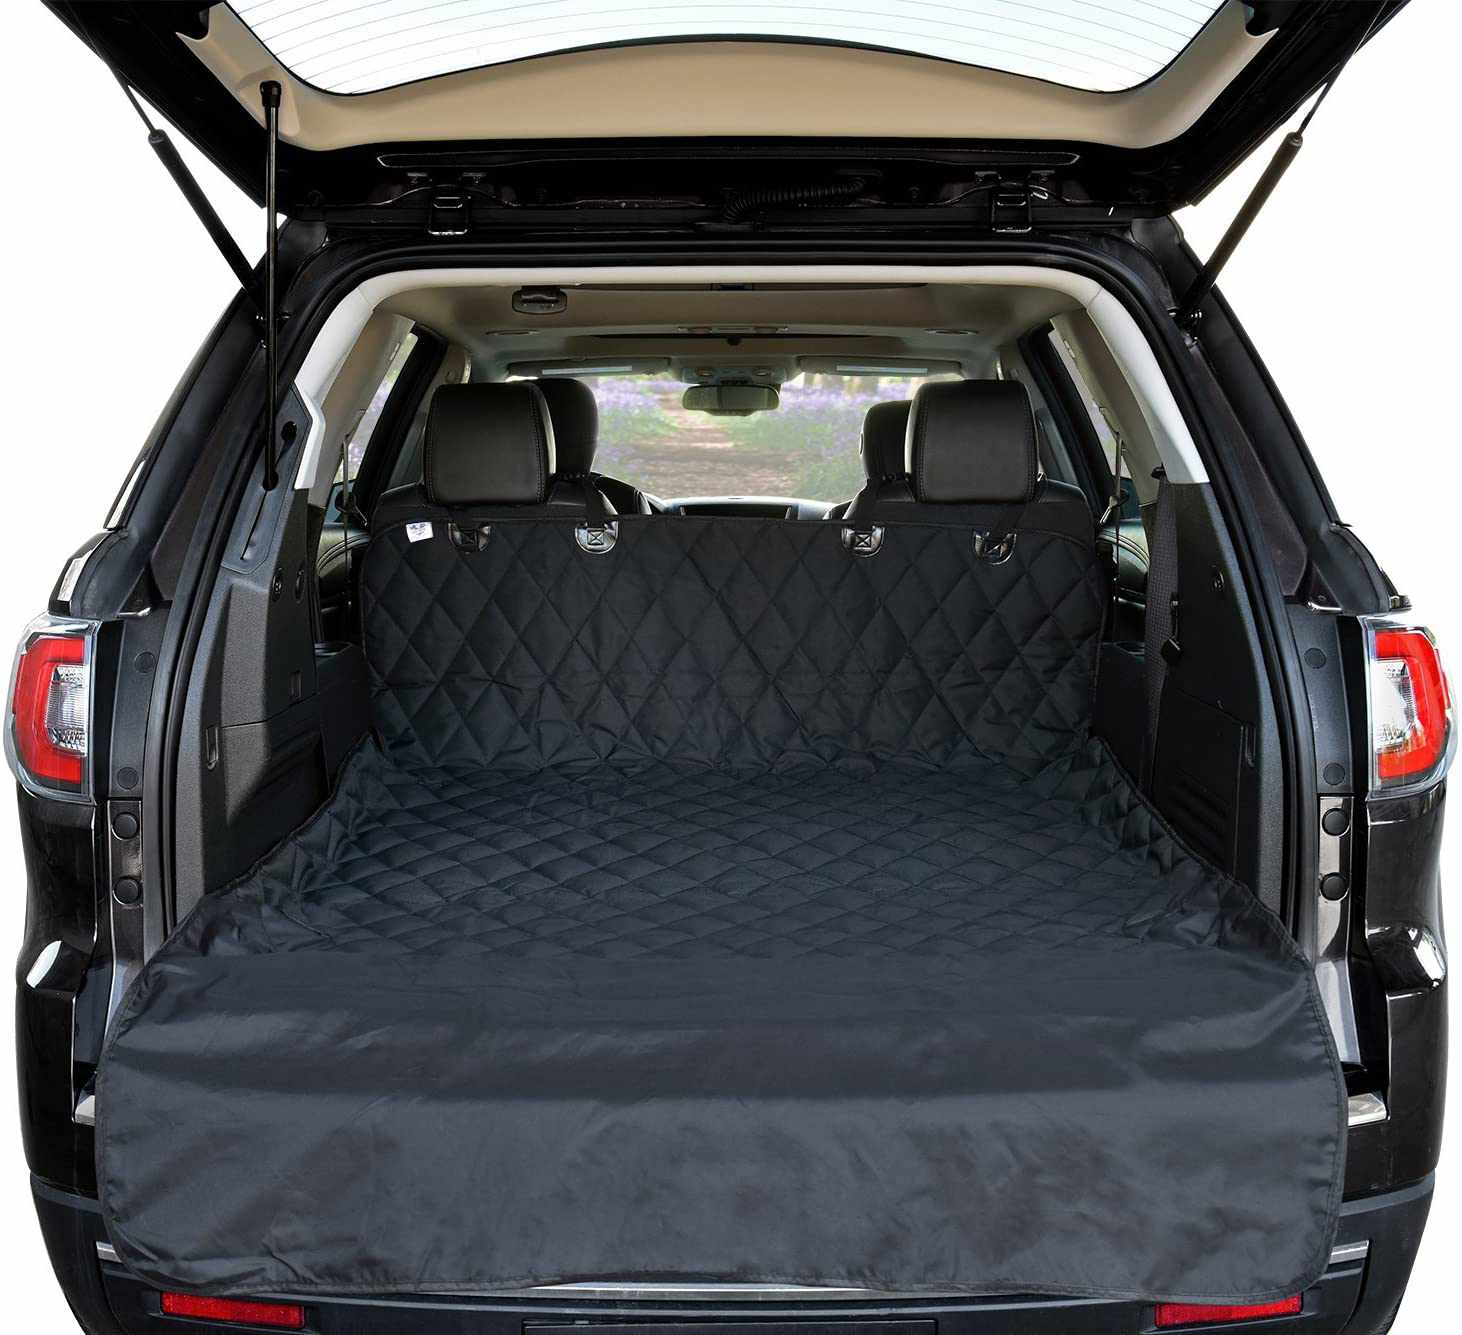 Arf Pets Cargo Liner Cover for SUVs and Cars